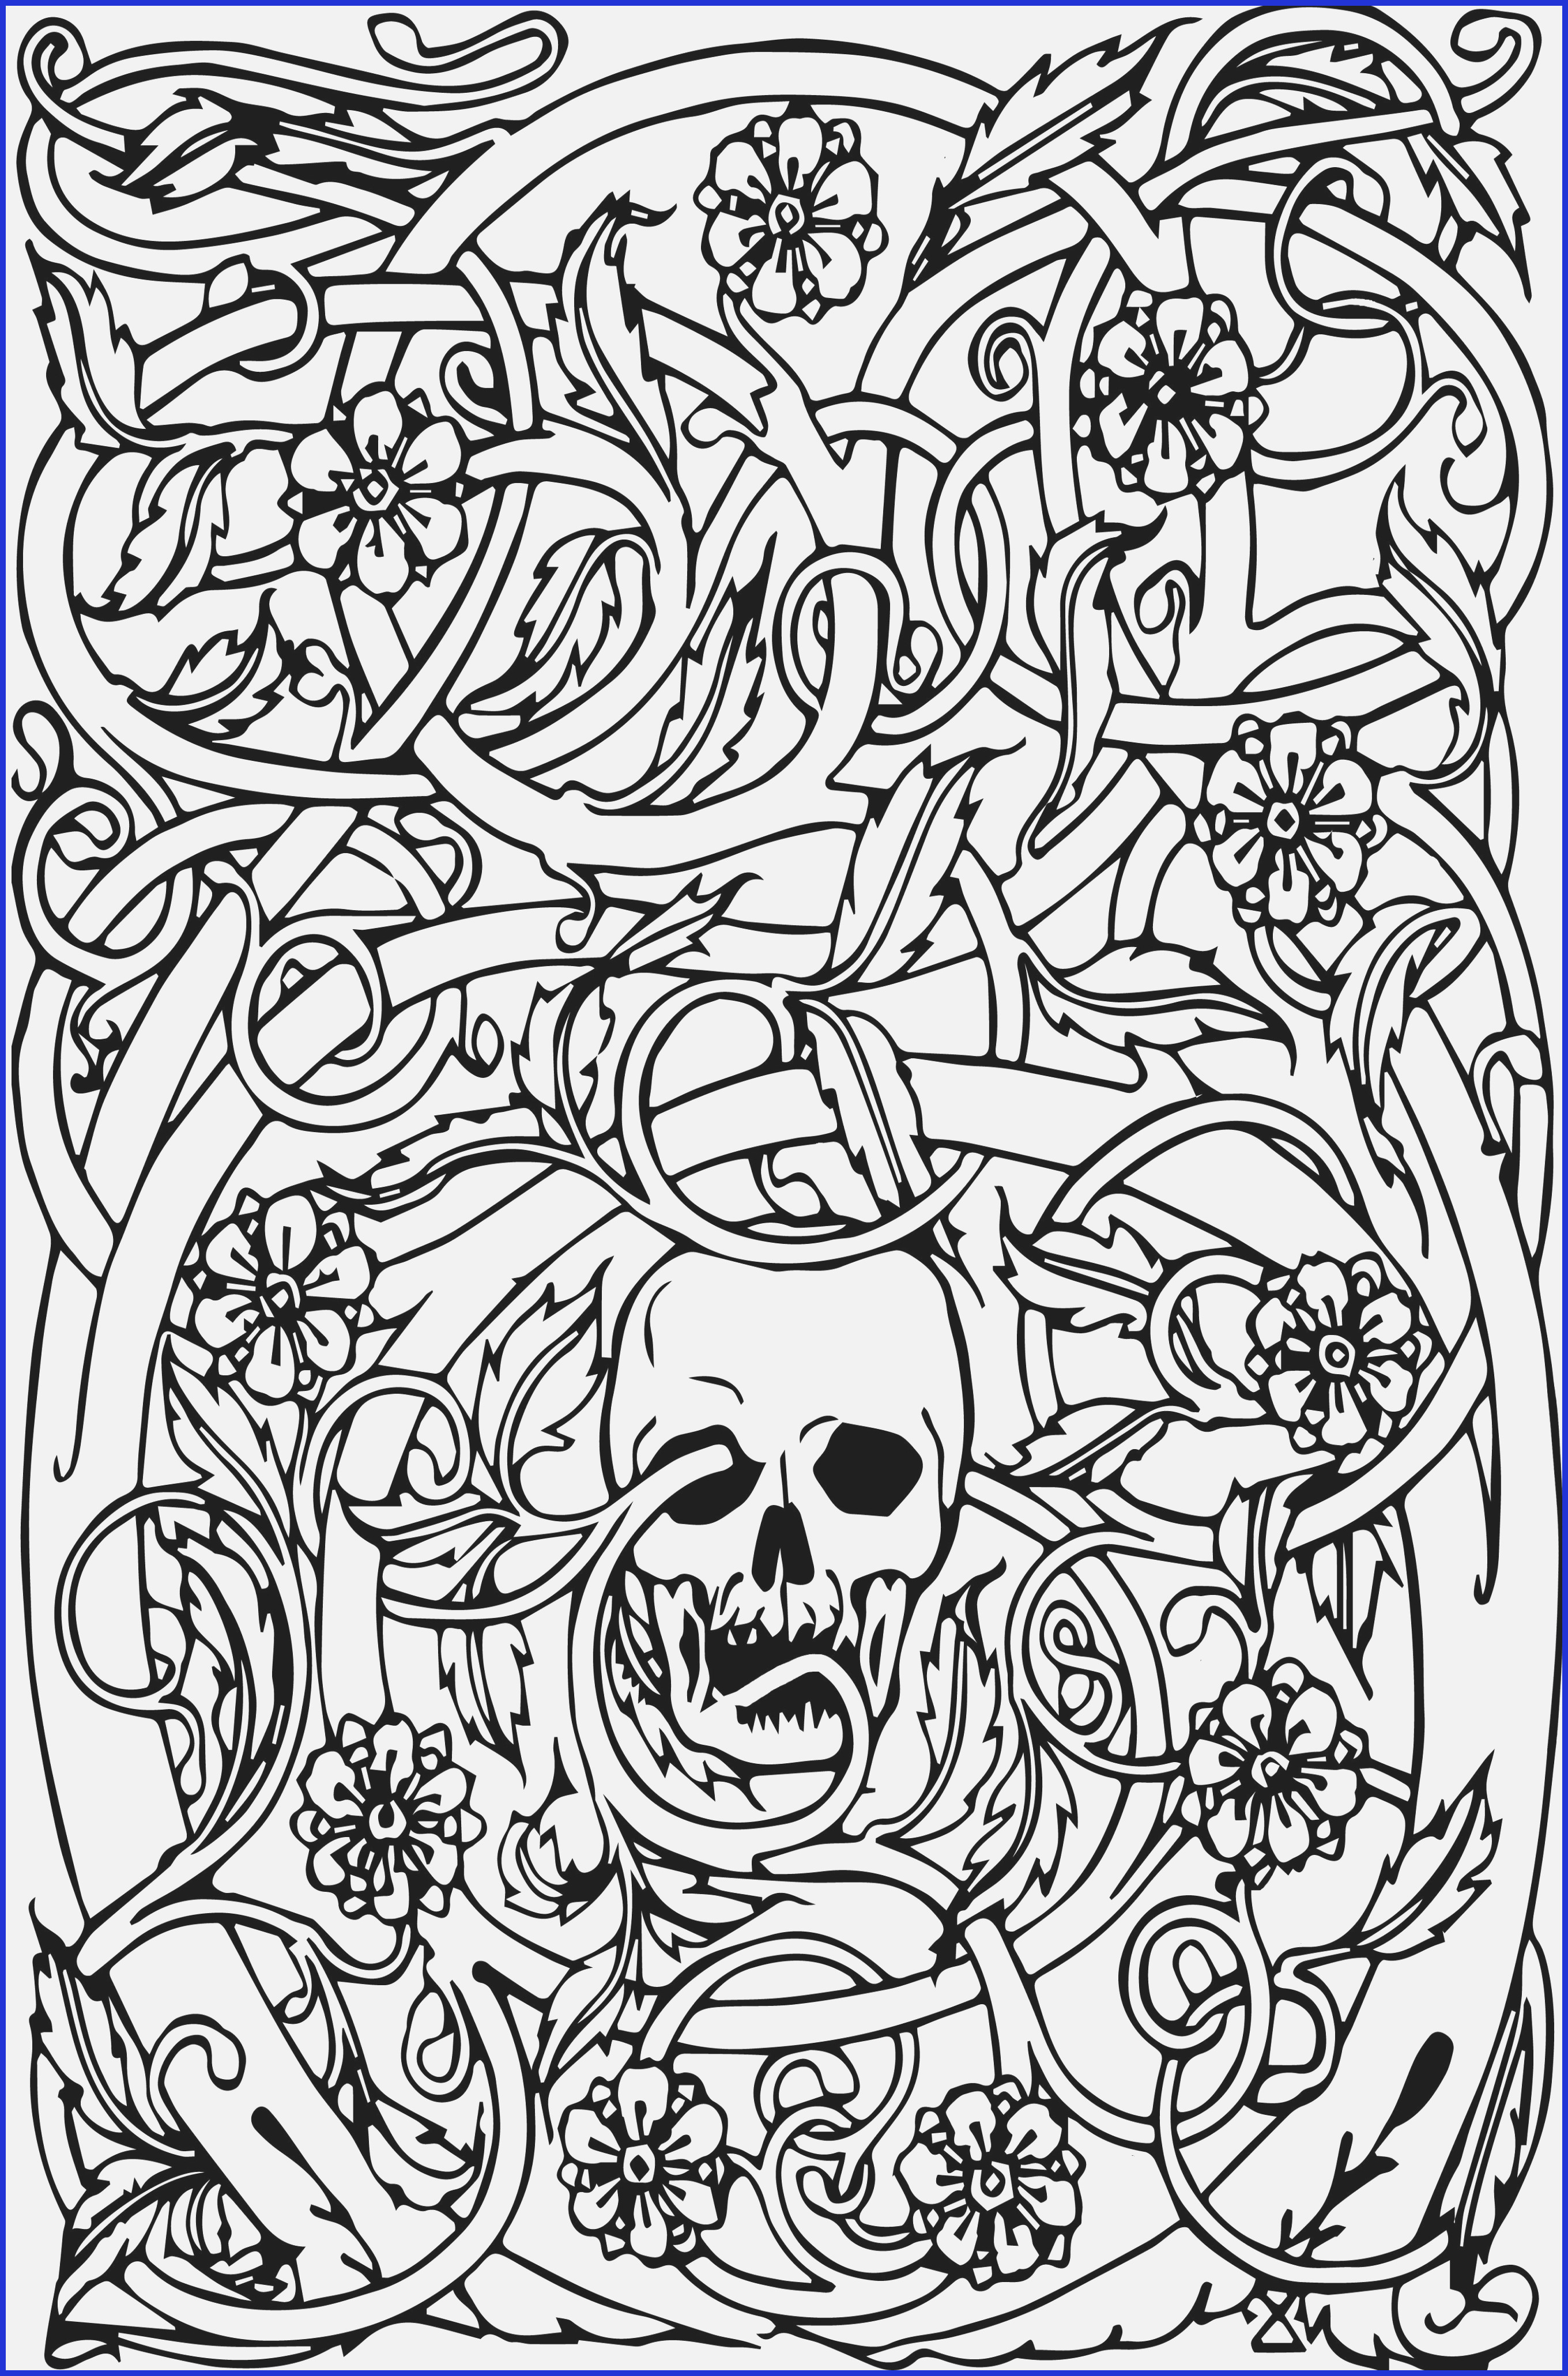 Free Scary Halloween Coloring Pages Scary Monsters Coloring Pages New 13 Best Free Printable Halloween